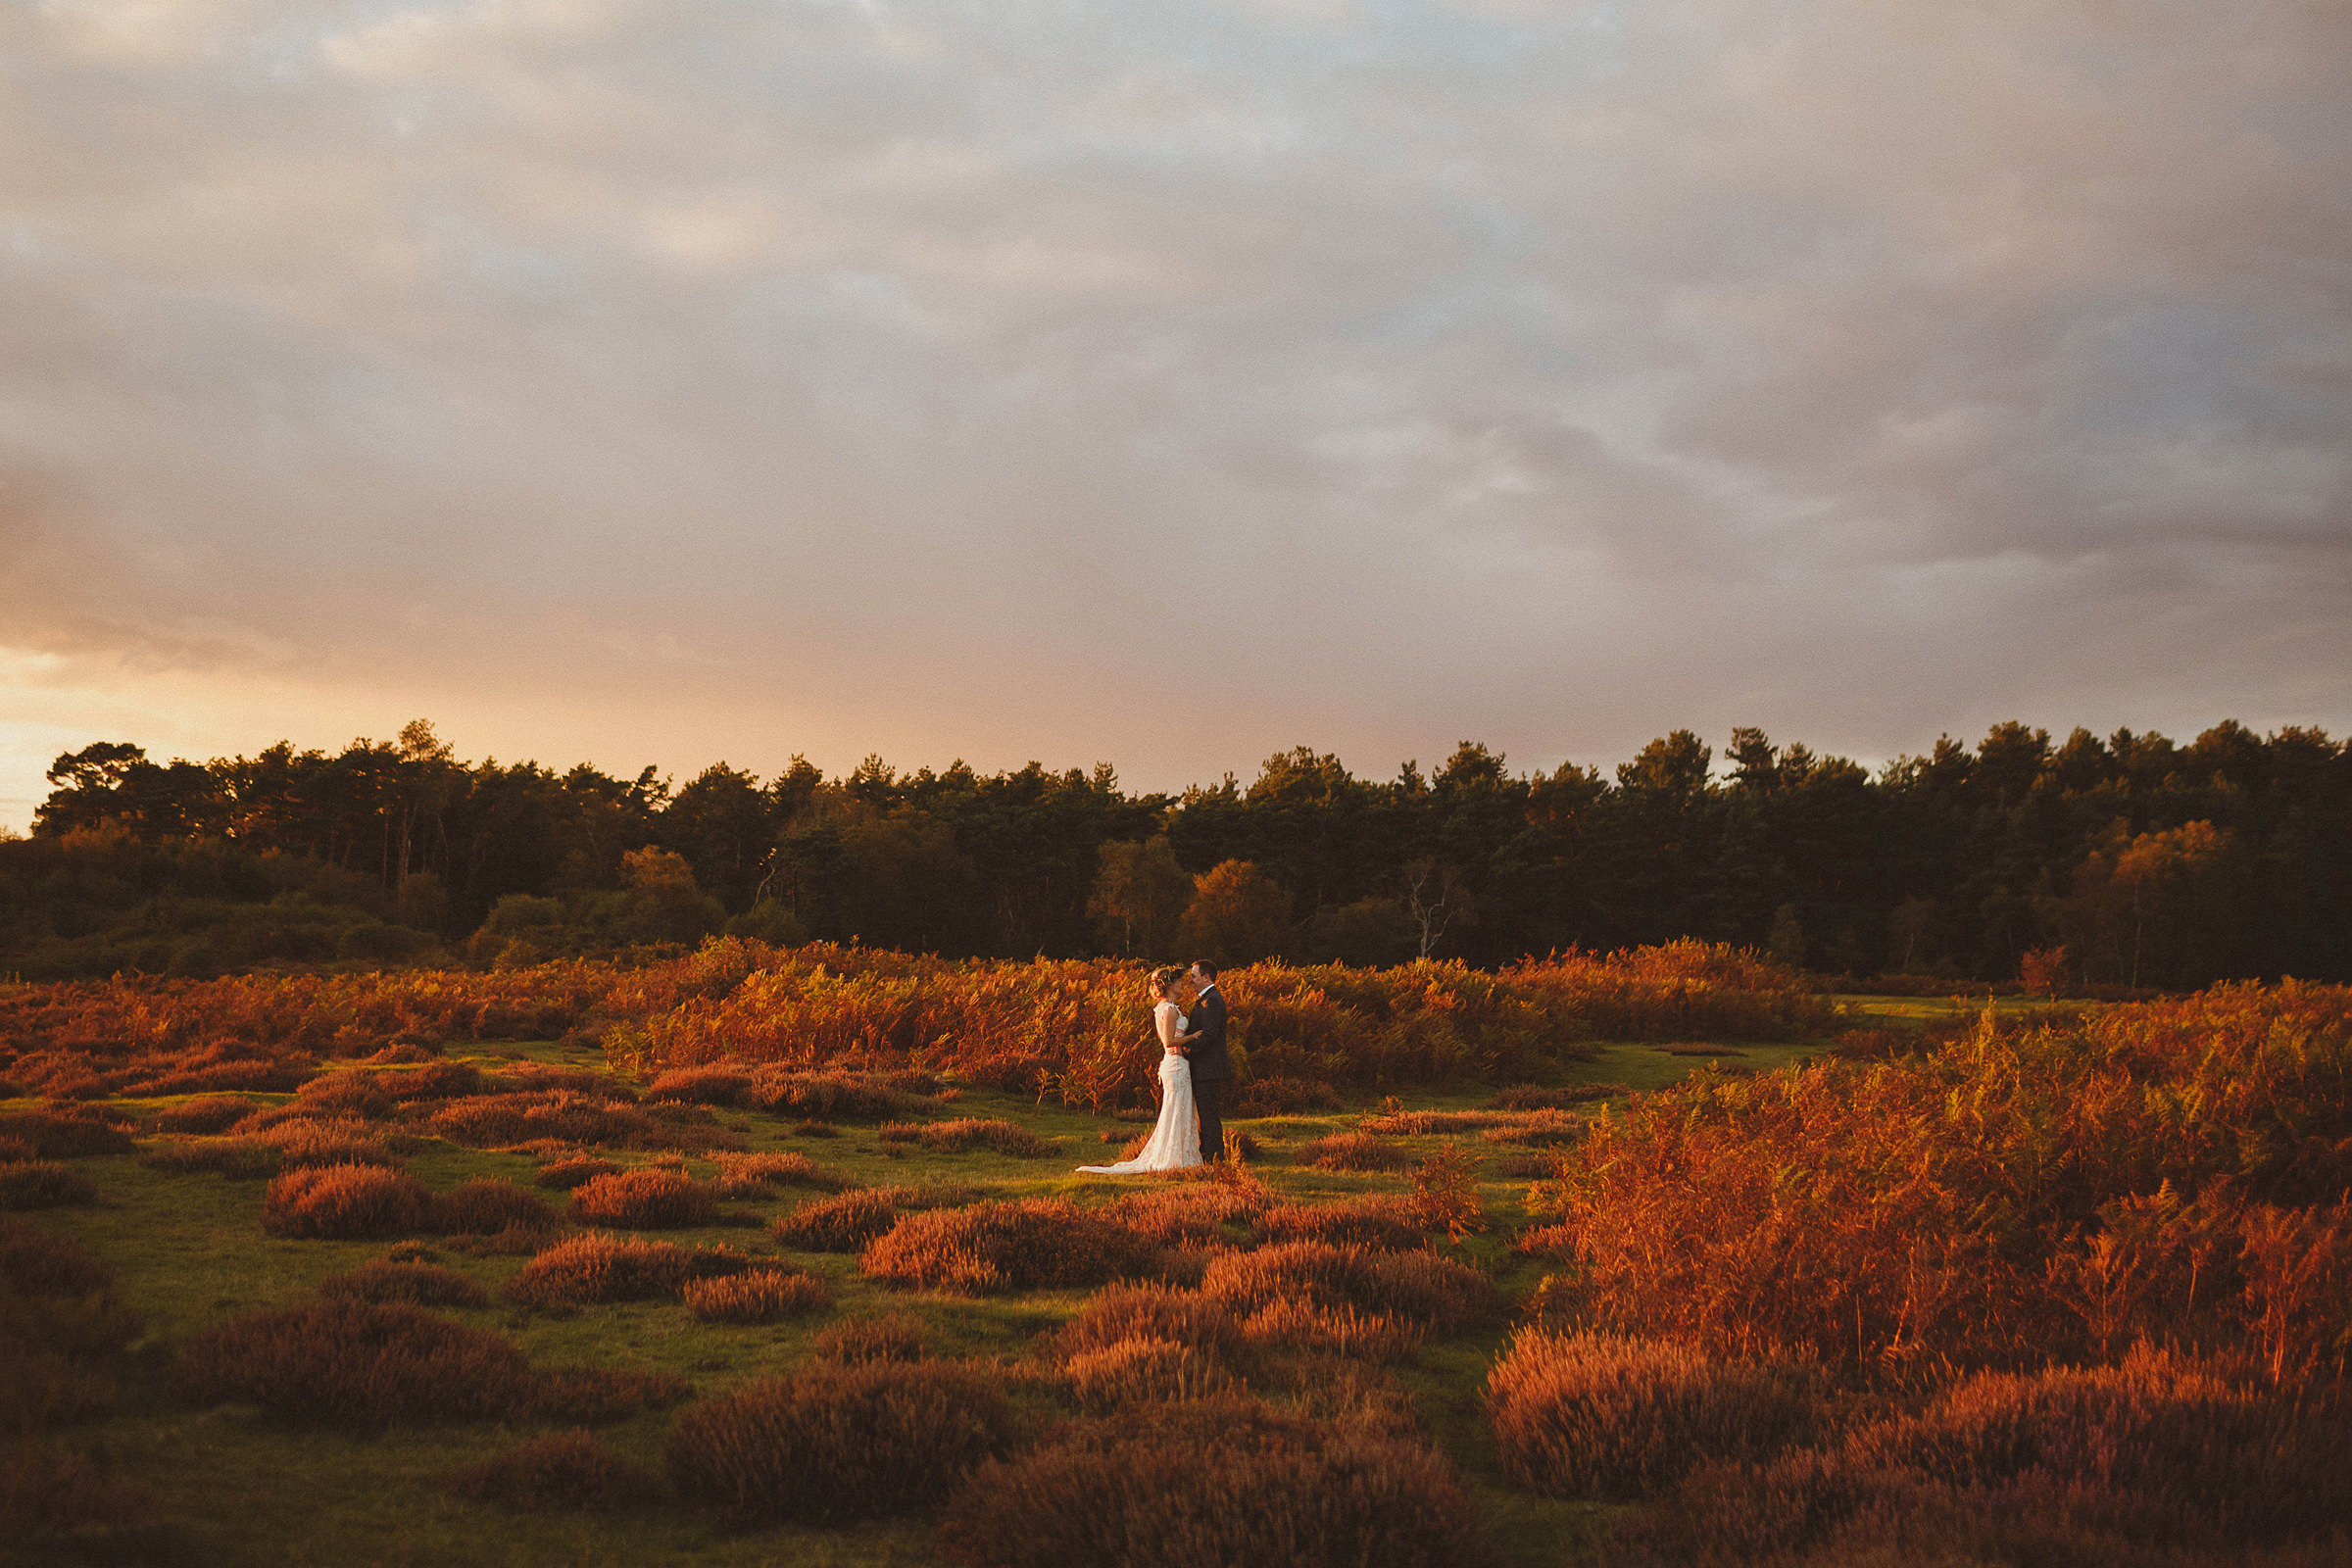 Landscape couple portrait in red and green field - photo by Ed Peers Photography